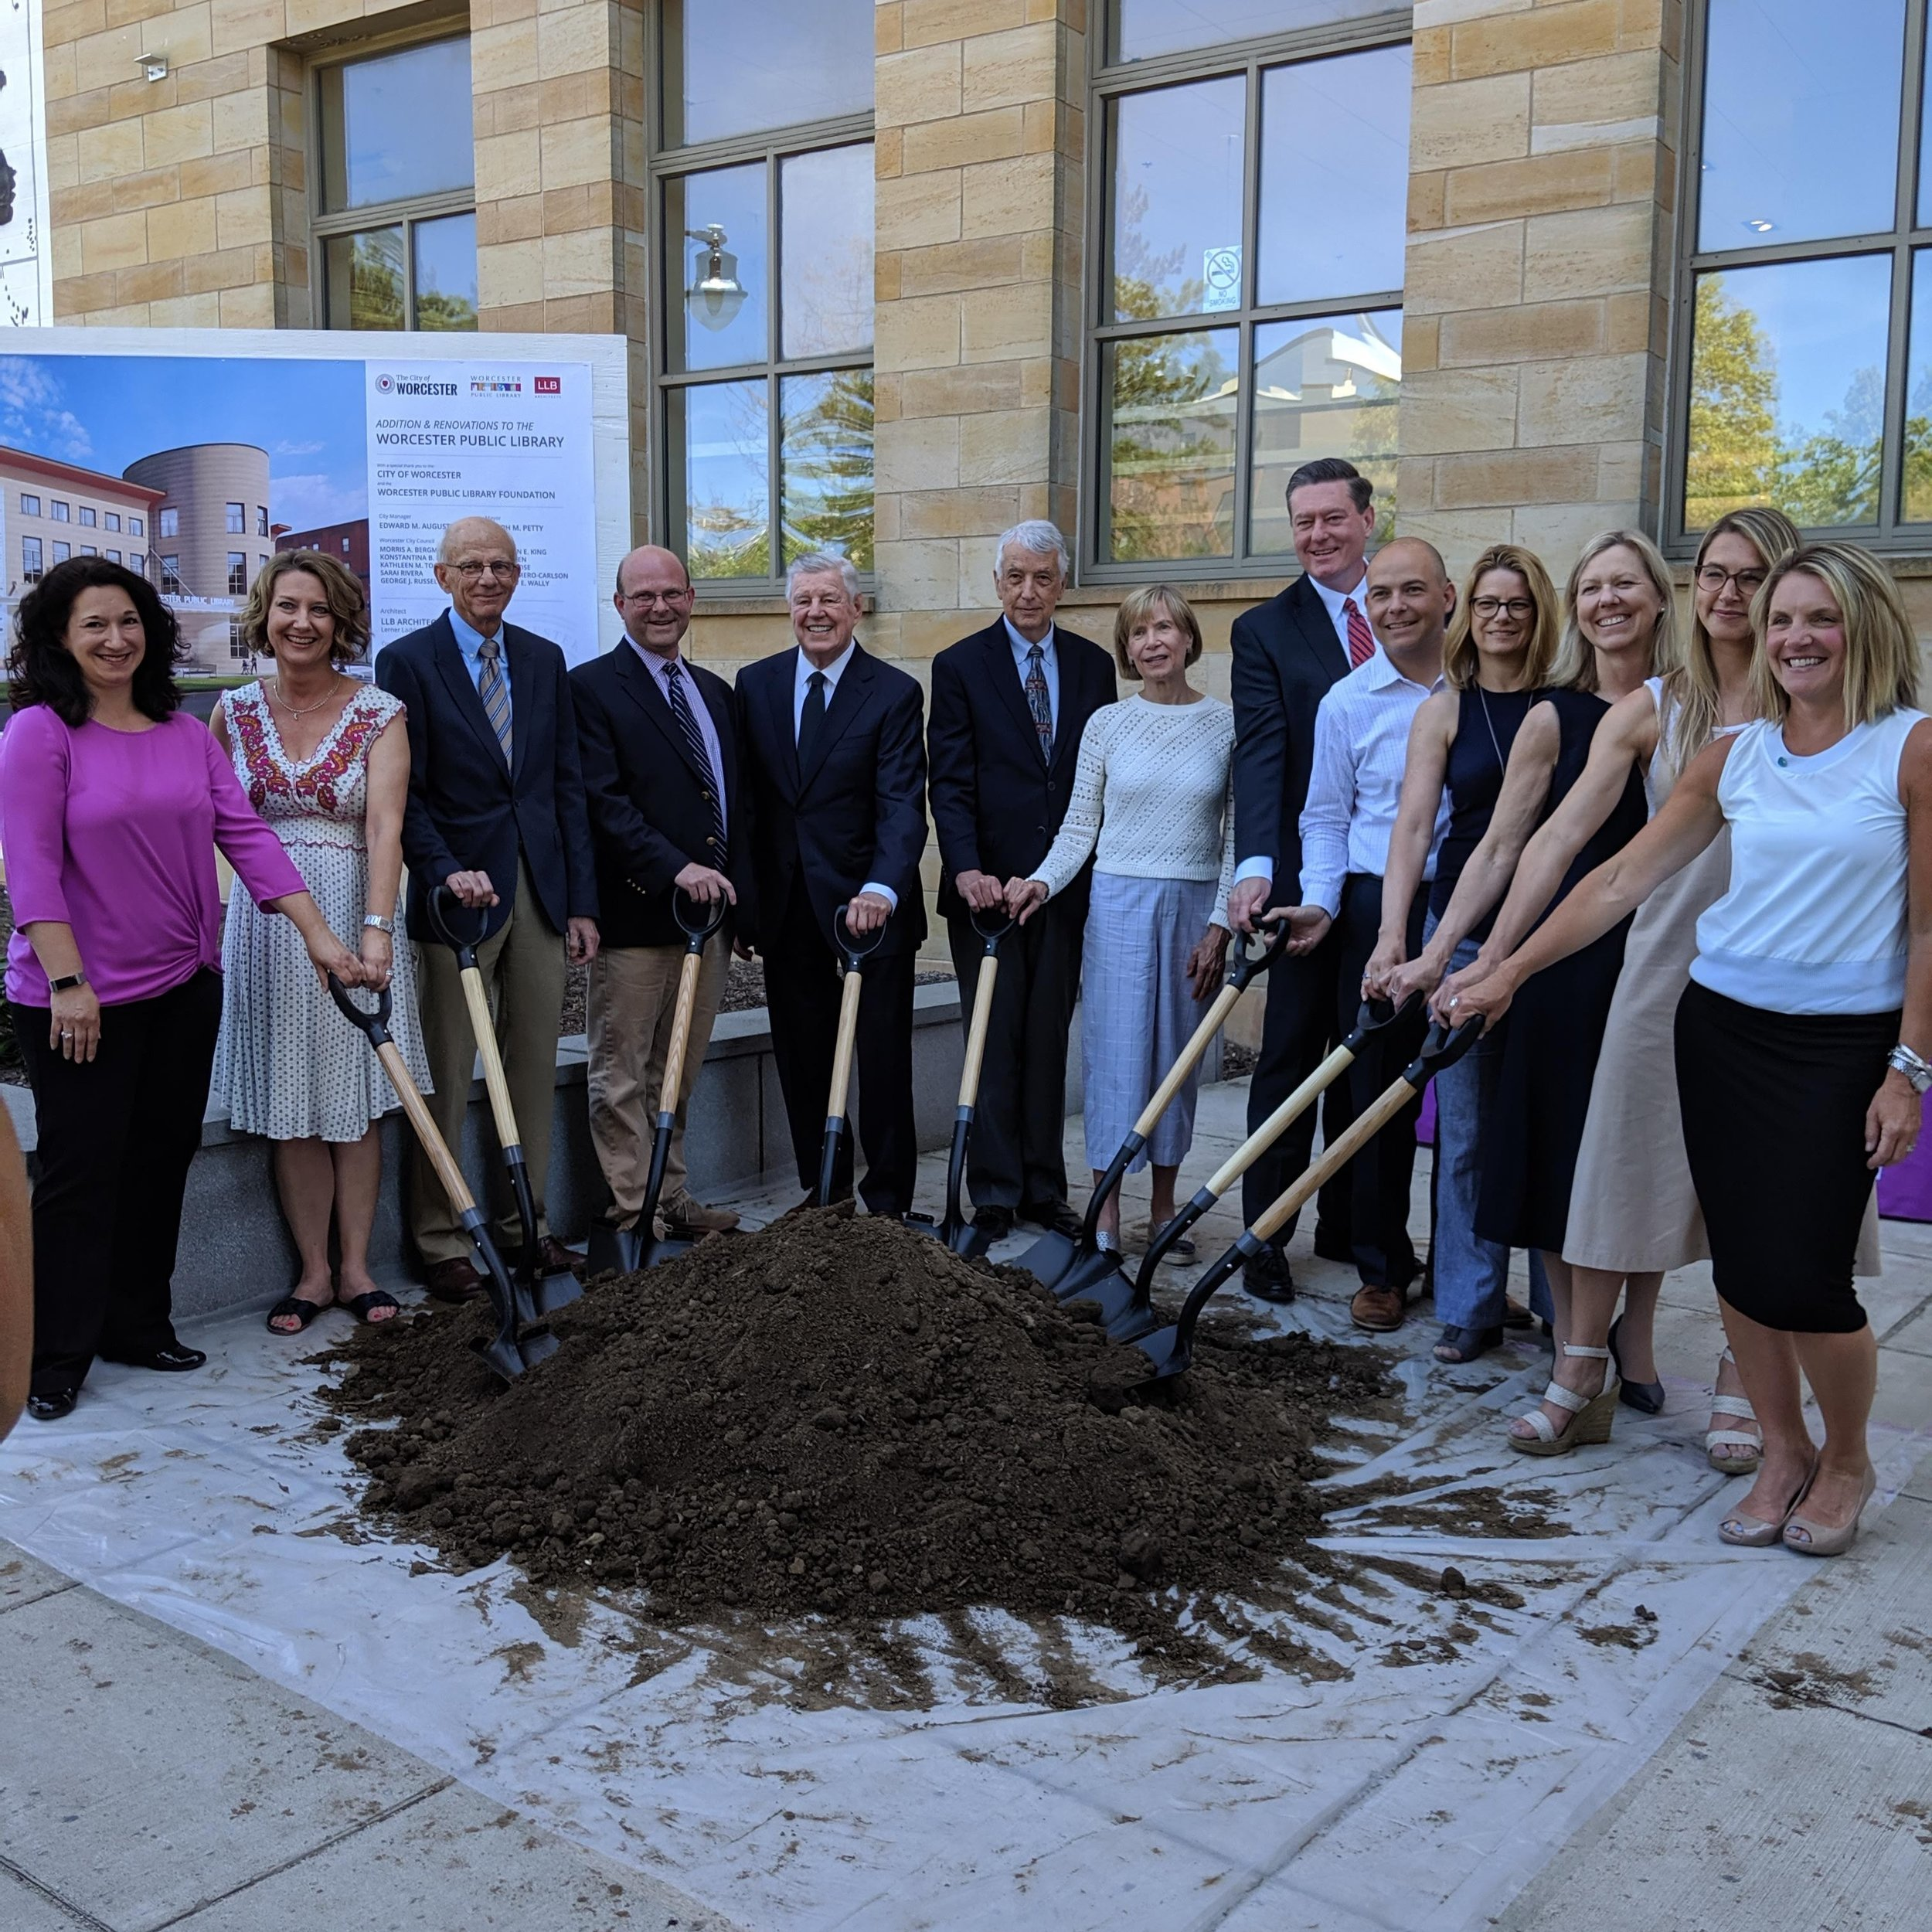 Leaders from the City of Worcester, the Worcester Public Library Foundation, the Board of the Worcester Public Library, and others, breaking ground for the planned expansion.